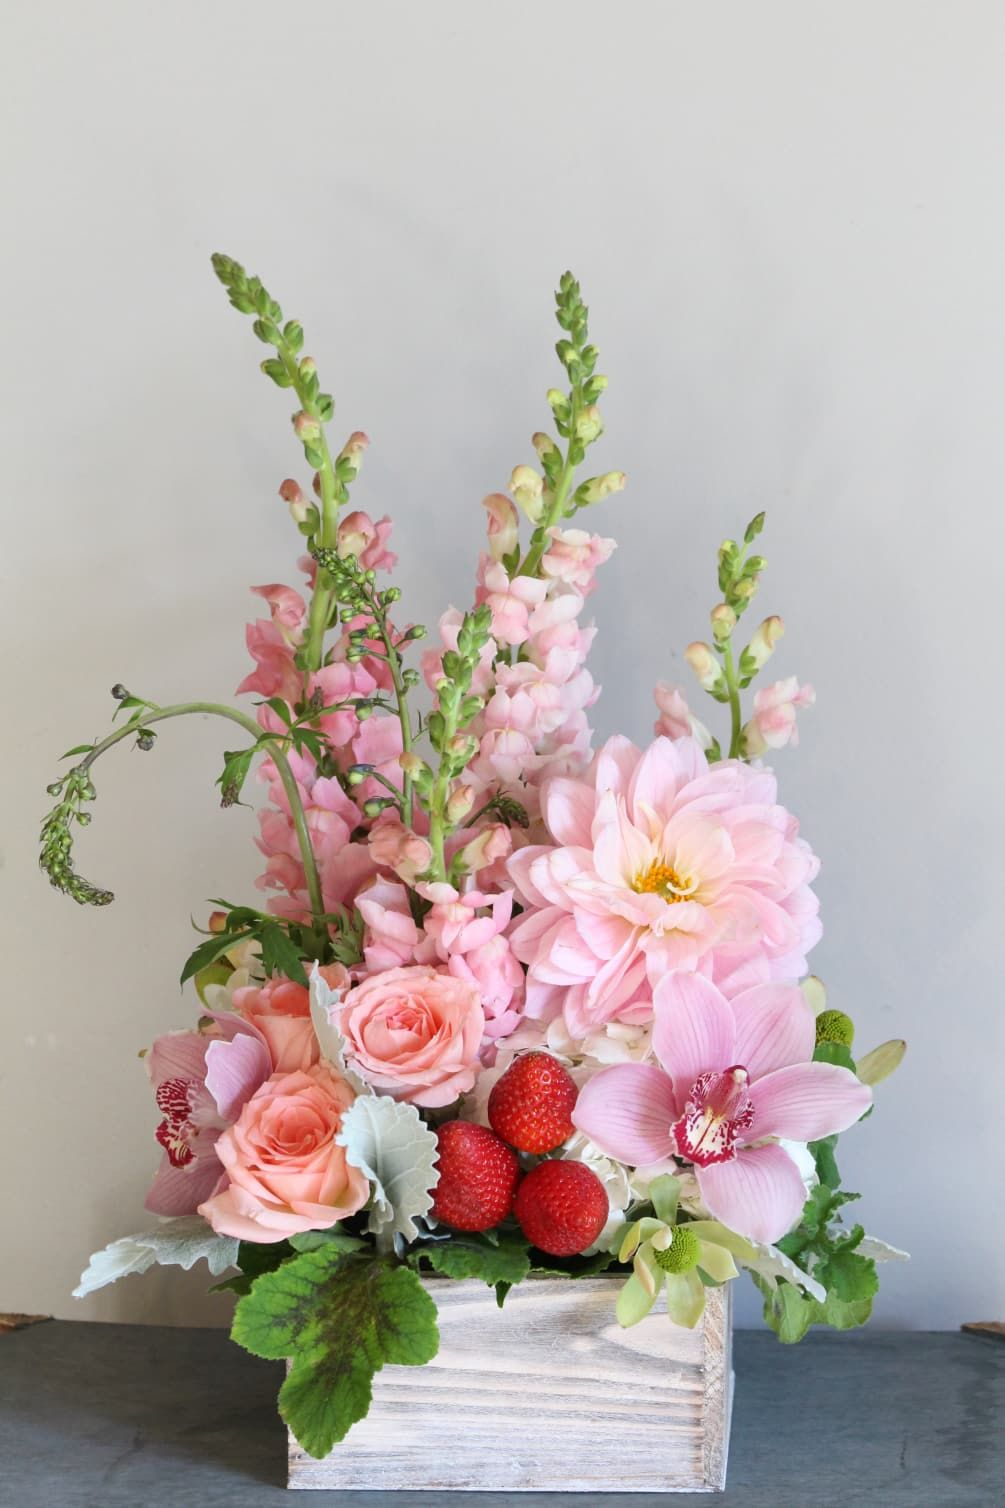 A lush arrangement of pink flowers in a white wash wooden